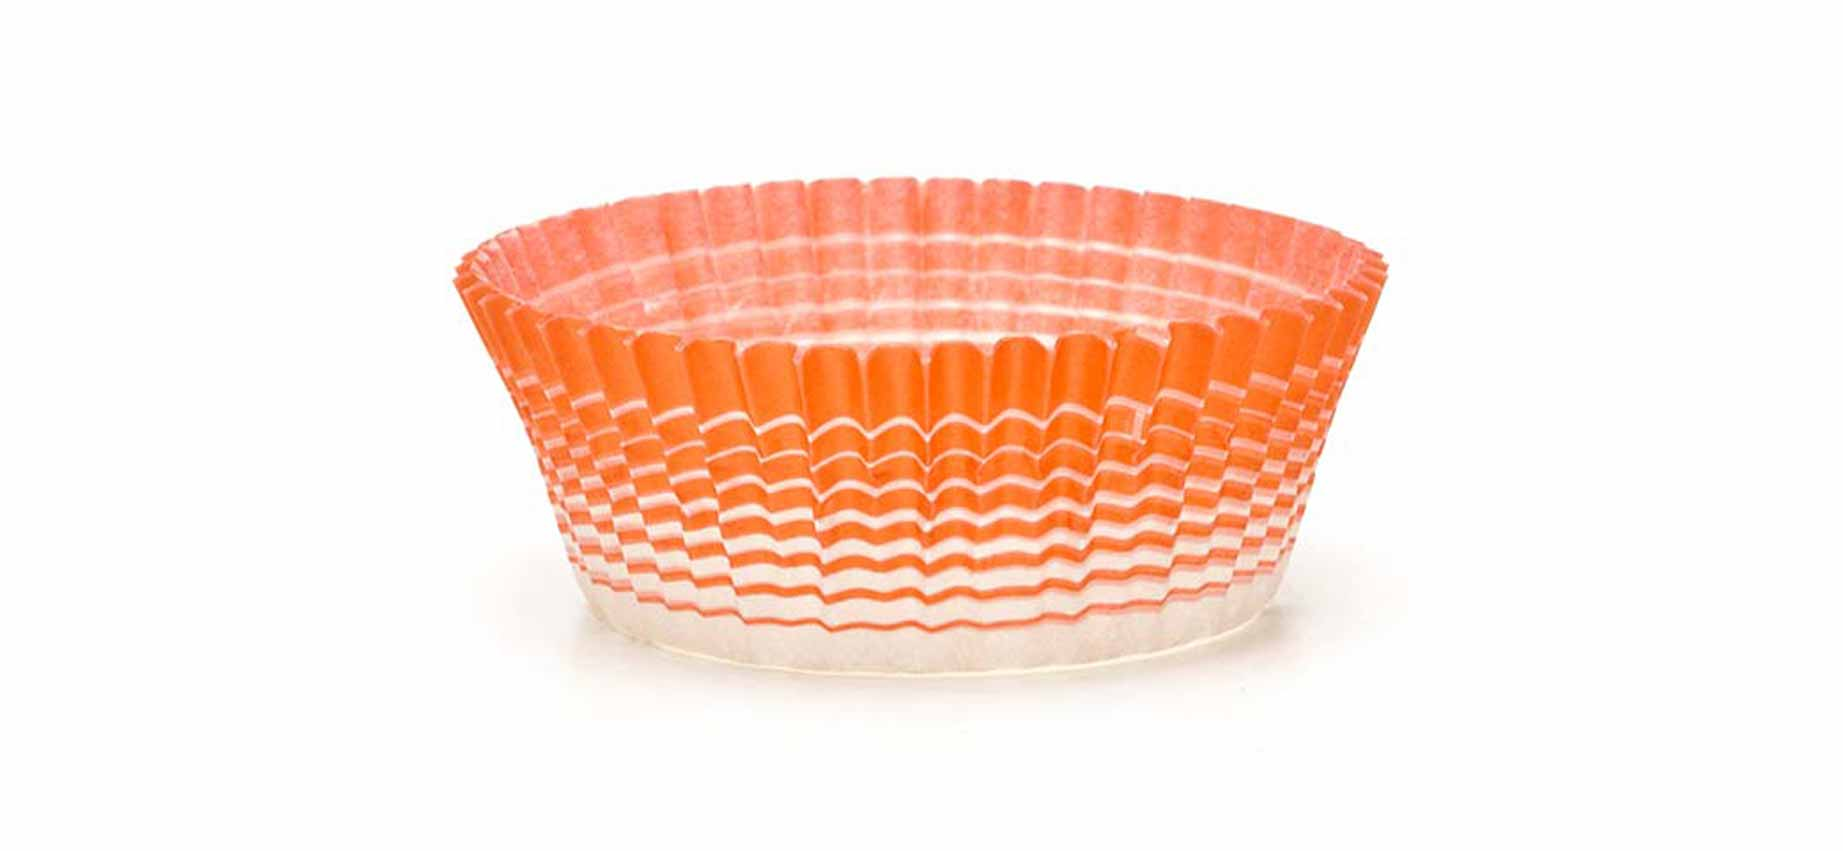 Novacart display baking cup